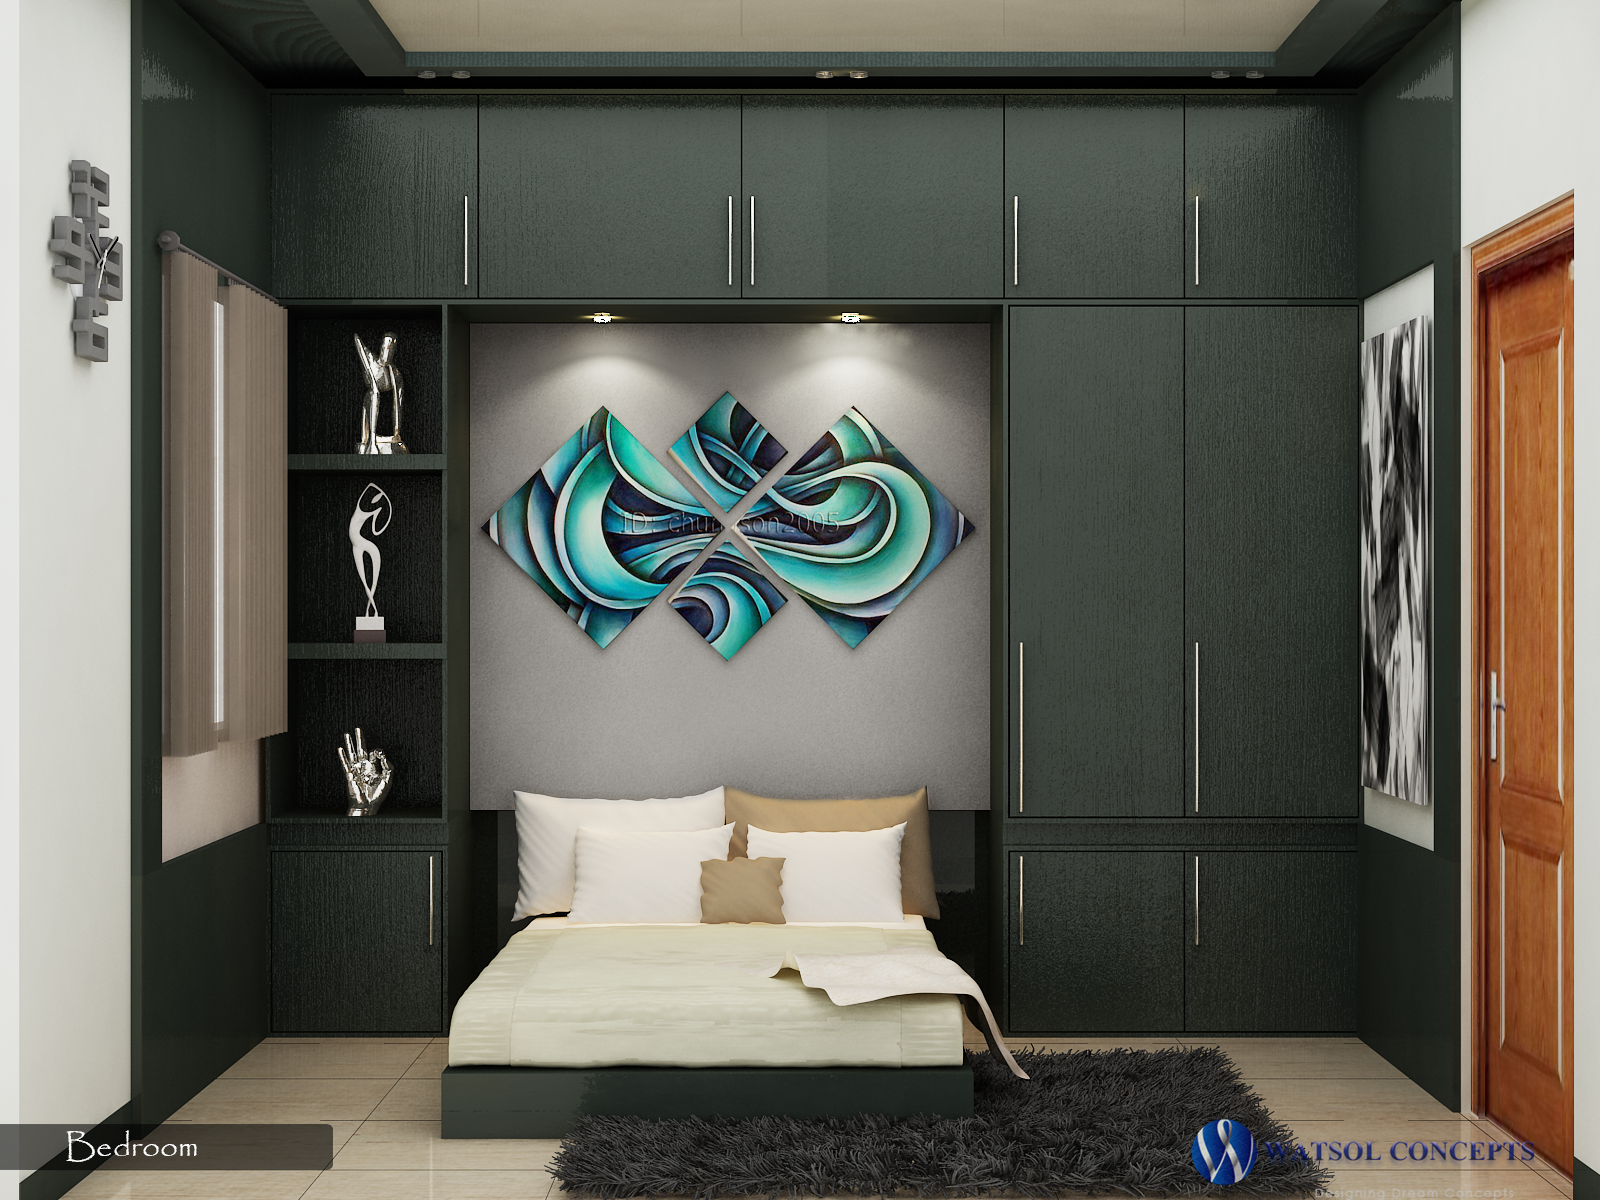 Home Interior Concepts Watsolconcepts Is One Which Has Office Interiors Home Interior .